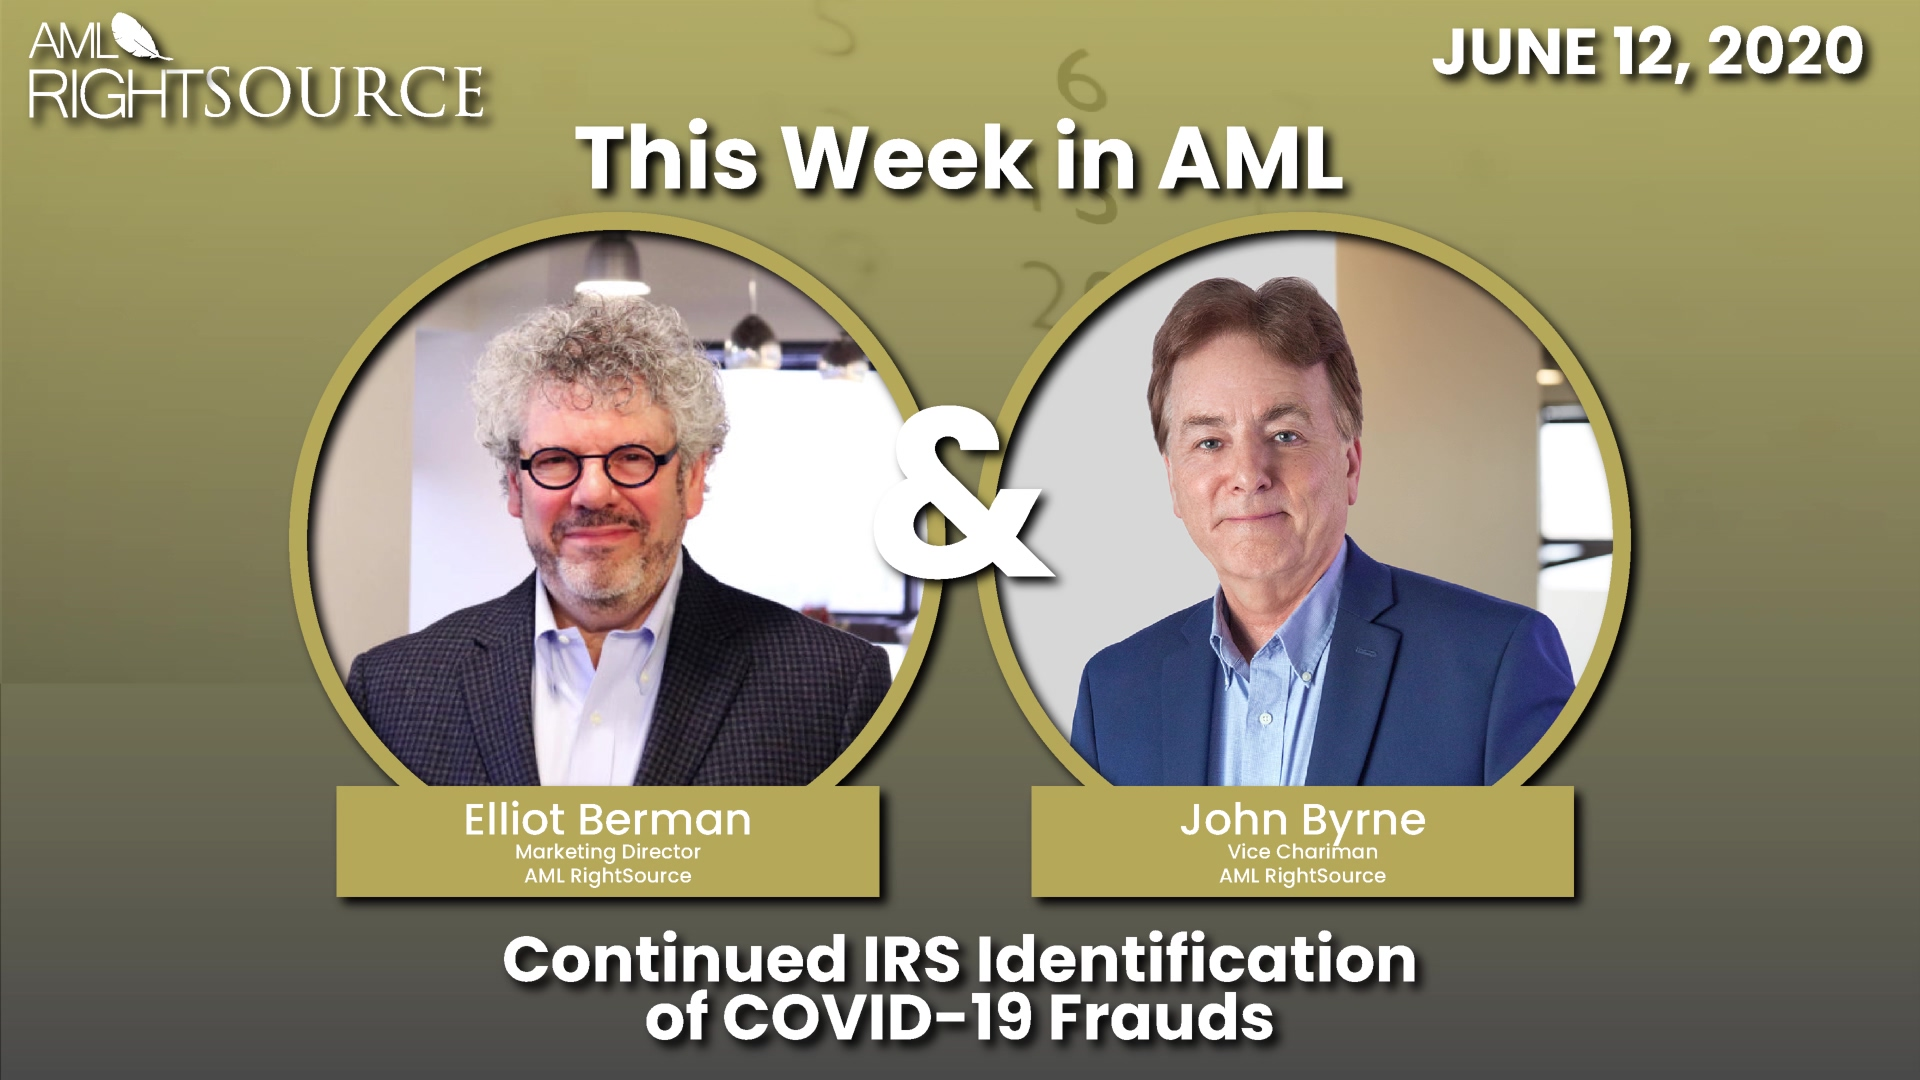 This Week in AML - Continued IRS Identification of COVID-19 Frauds